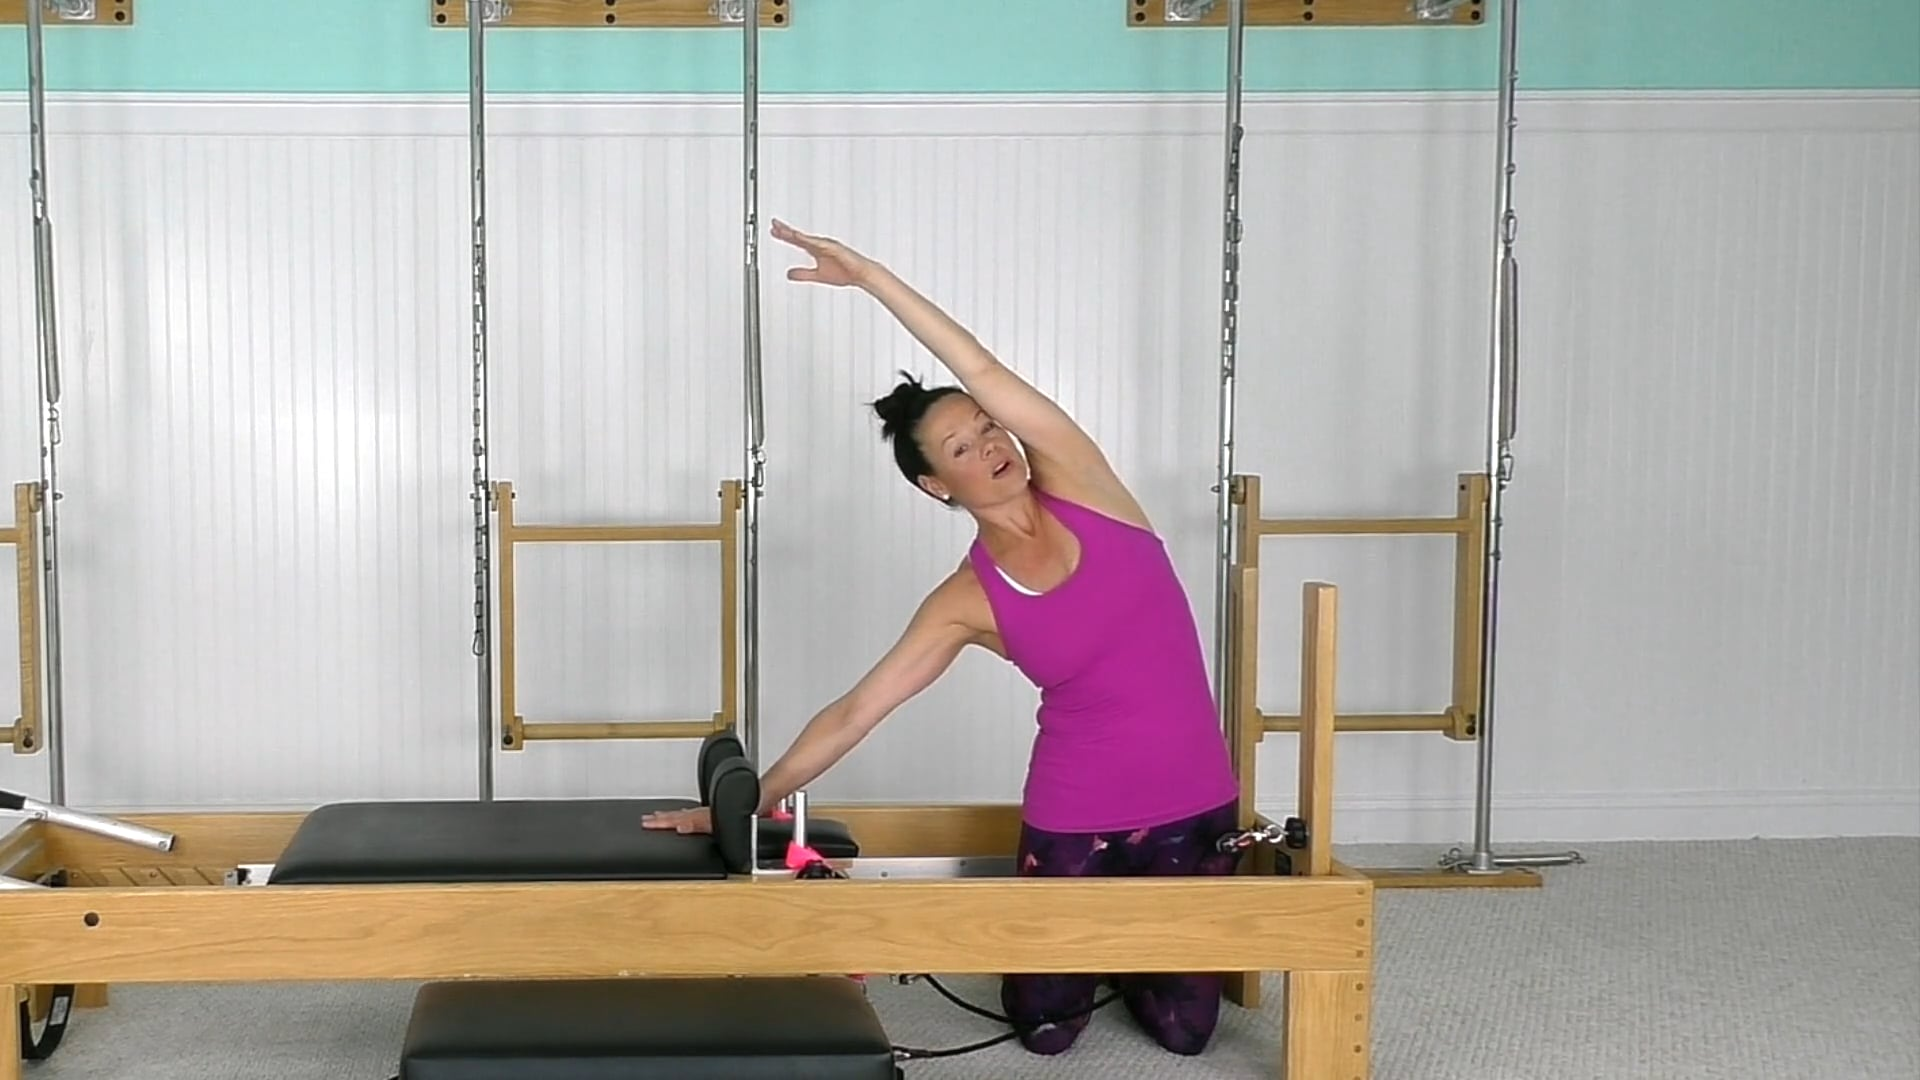 Reformer Workout With No Springs Attached (20 mins)